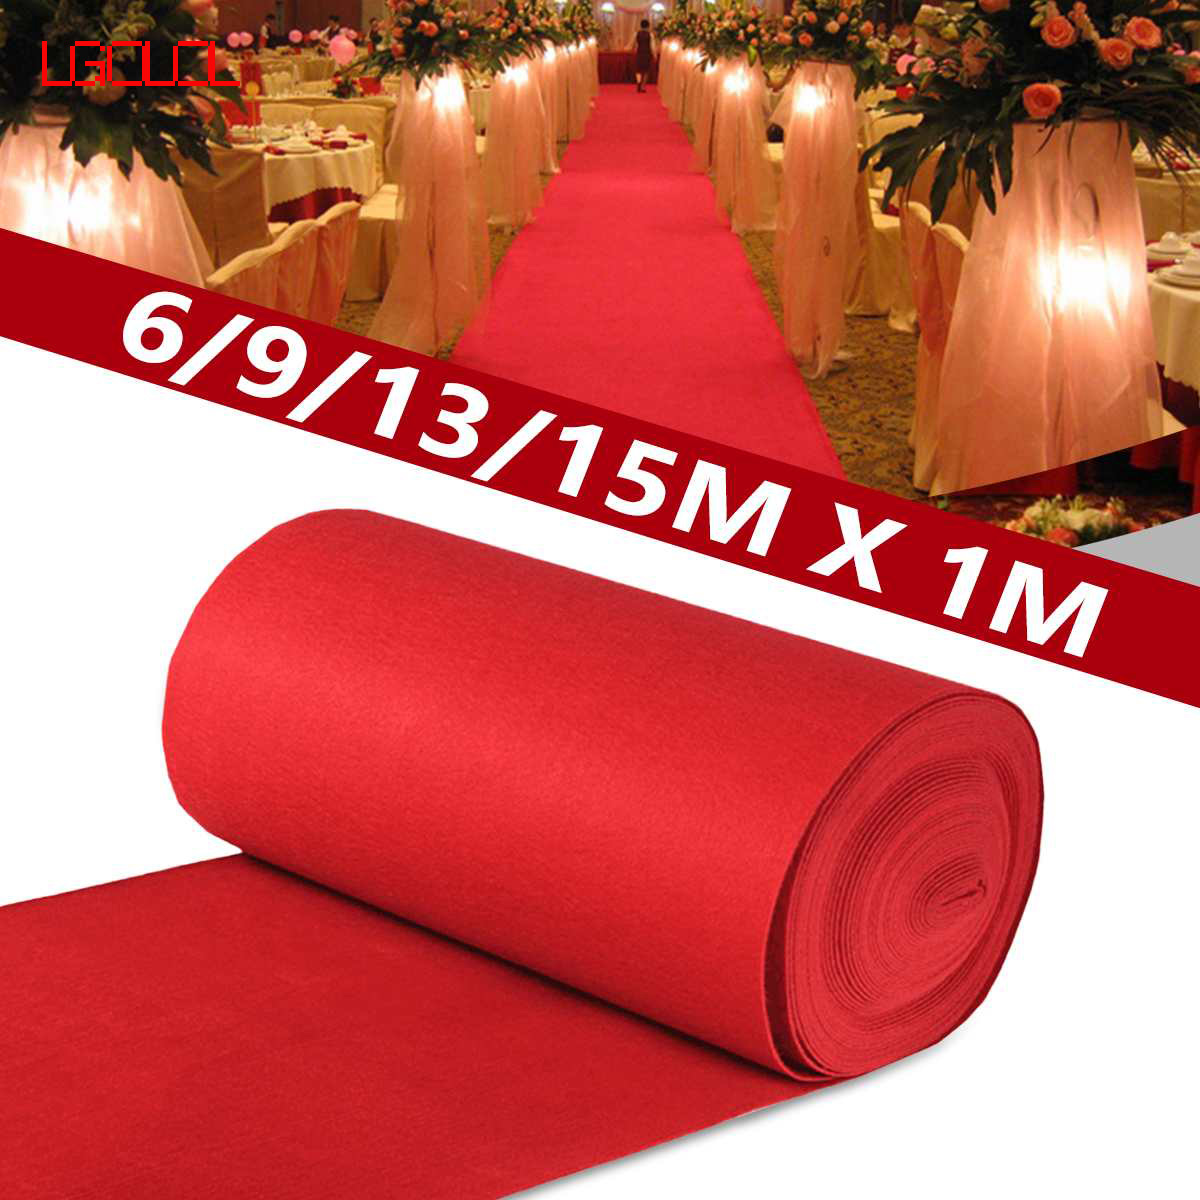 6/9/13 / 15m Red Outdoor Carpet Wedding Banquet Celebration Film Festival Event Reward Decoration Carpet Free Shipping LGOLOL